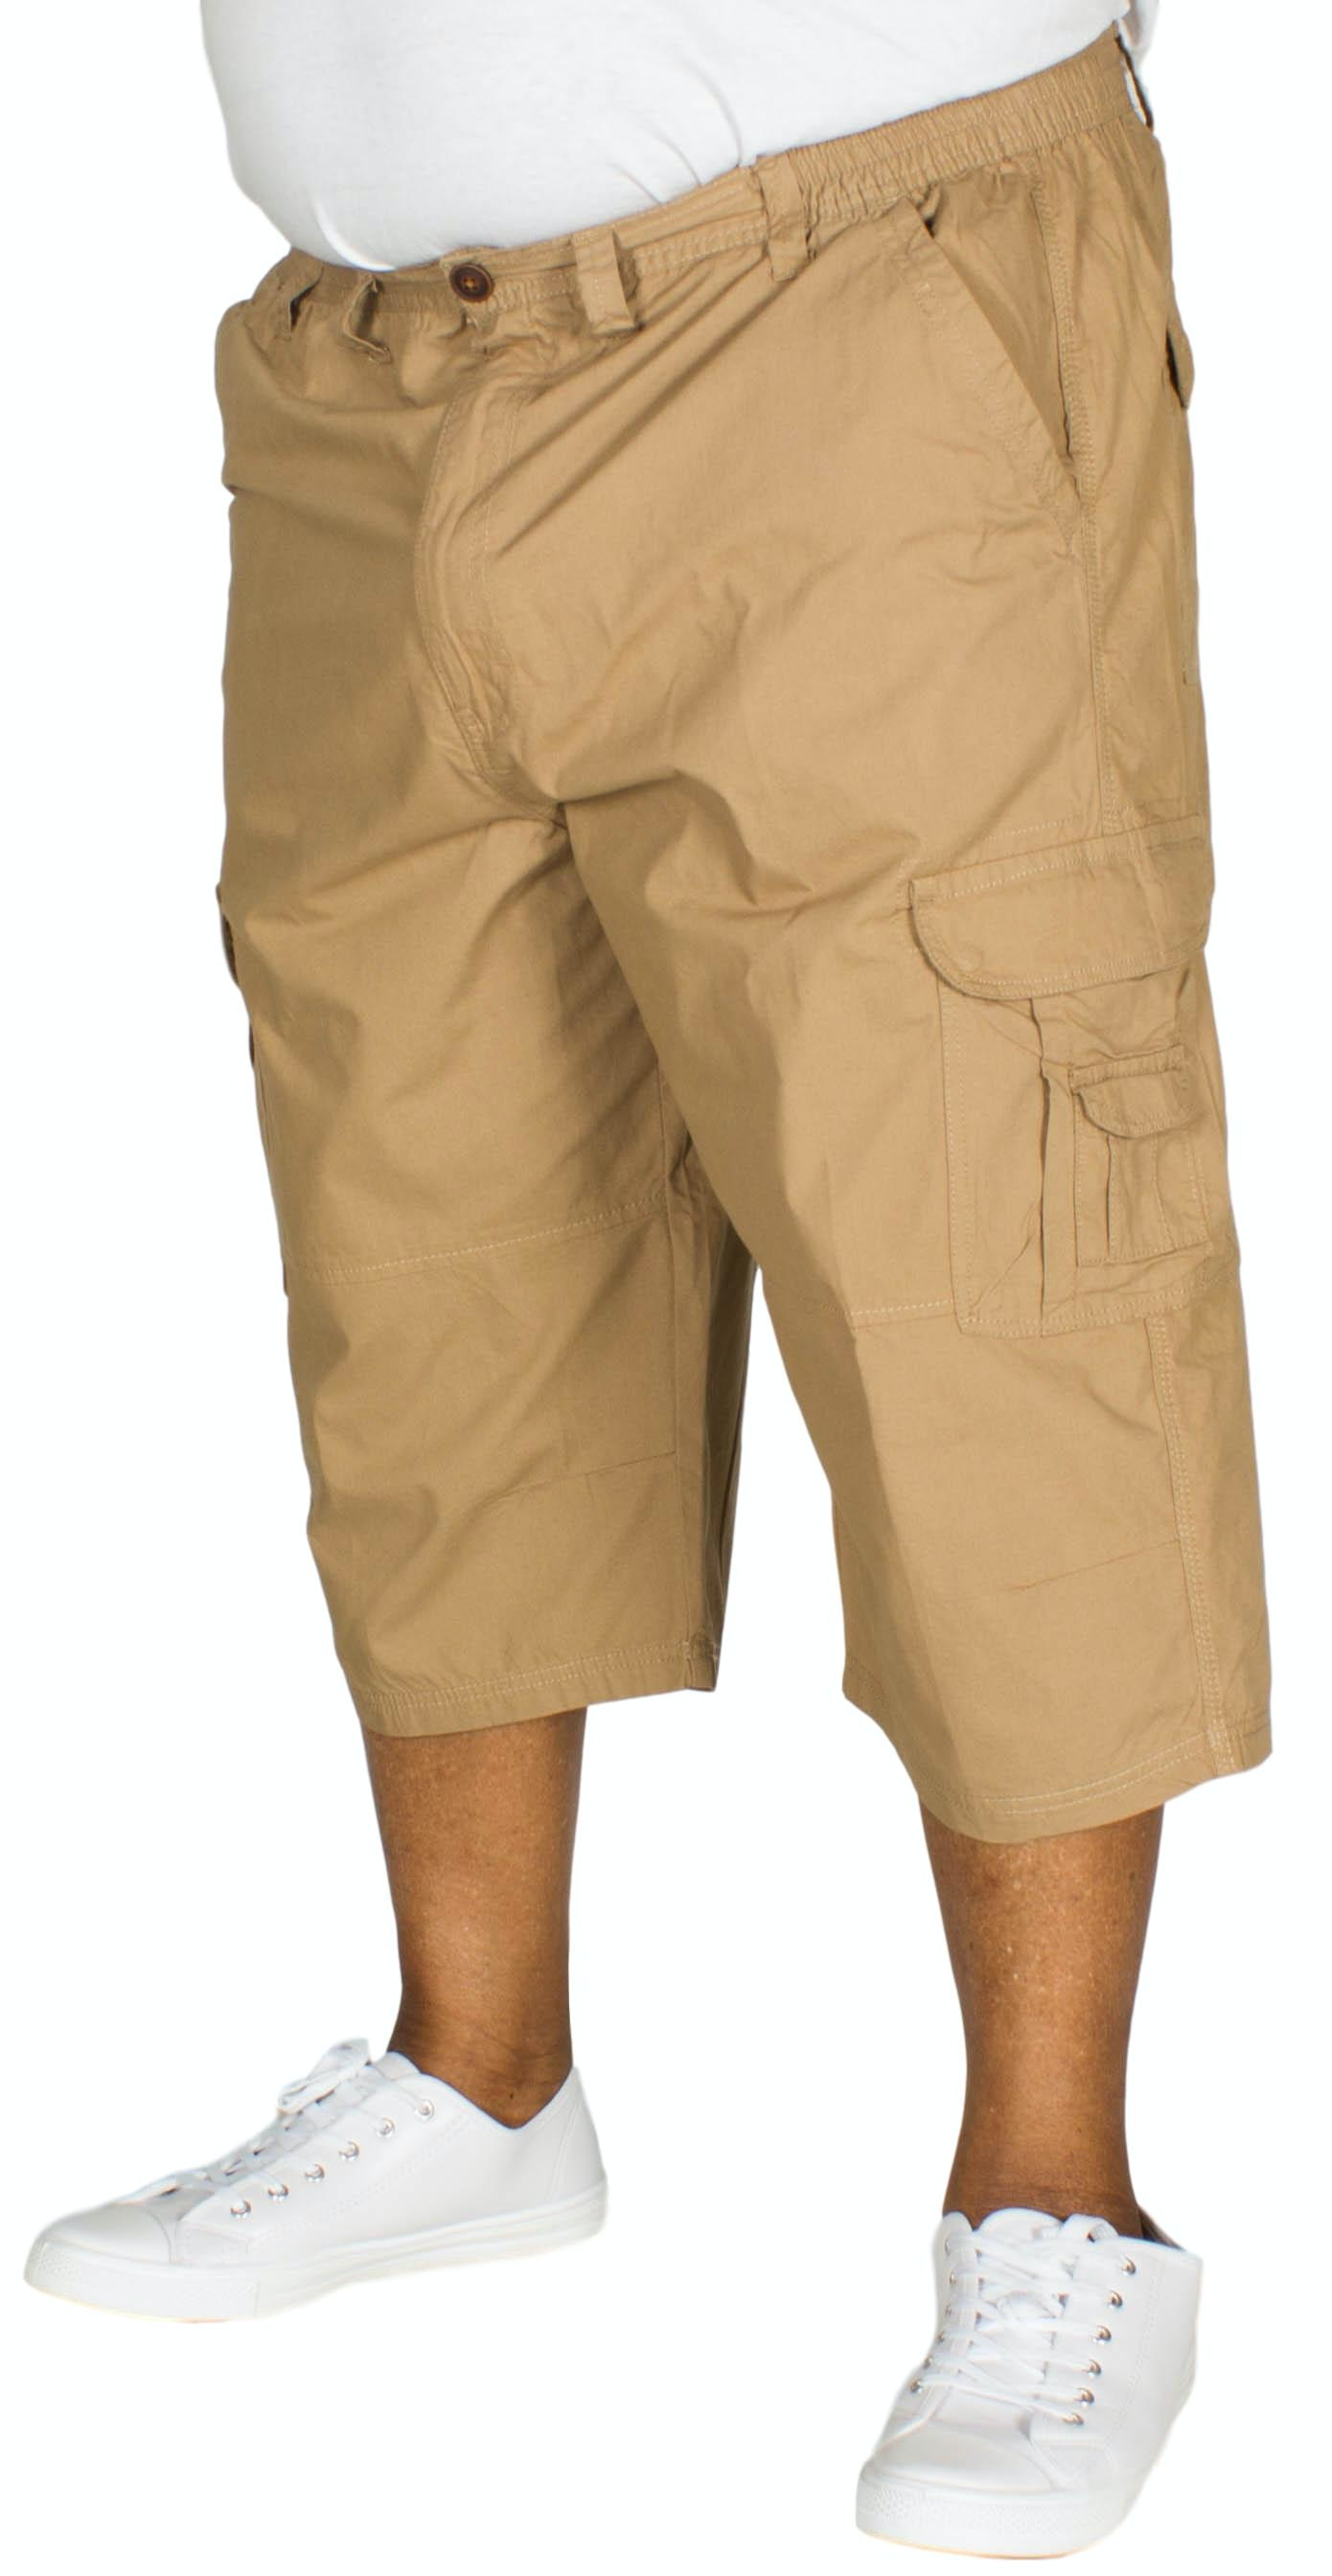 Metaphor 3/4 Combat Shorts Fawn